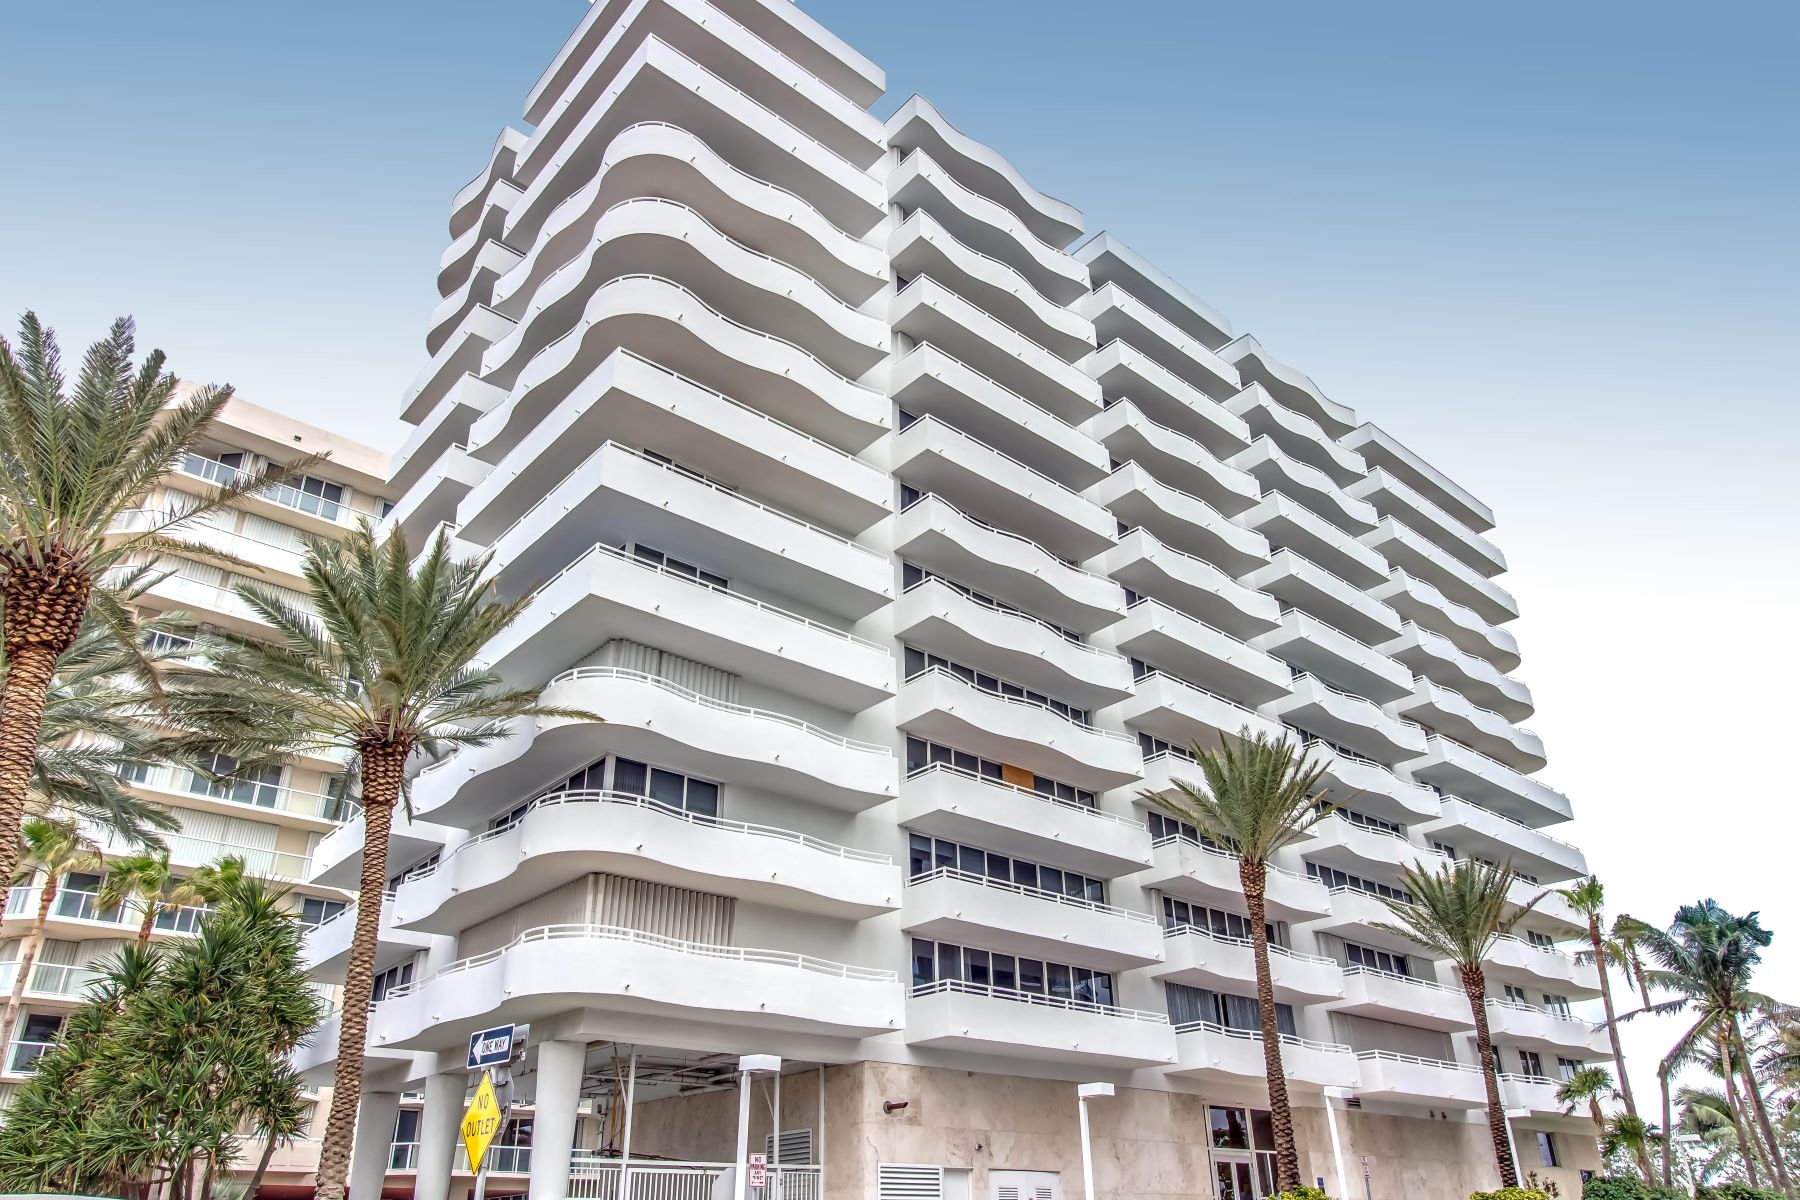 شقة بعمارة للـ Rent في 8911 Collins Ave 8911 Collins Ave 202 Surfside, Florida 33154 United States